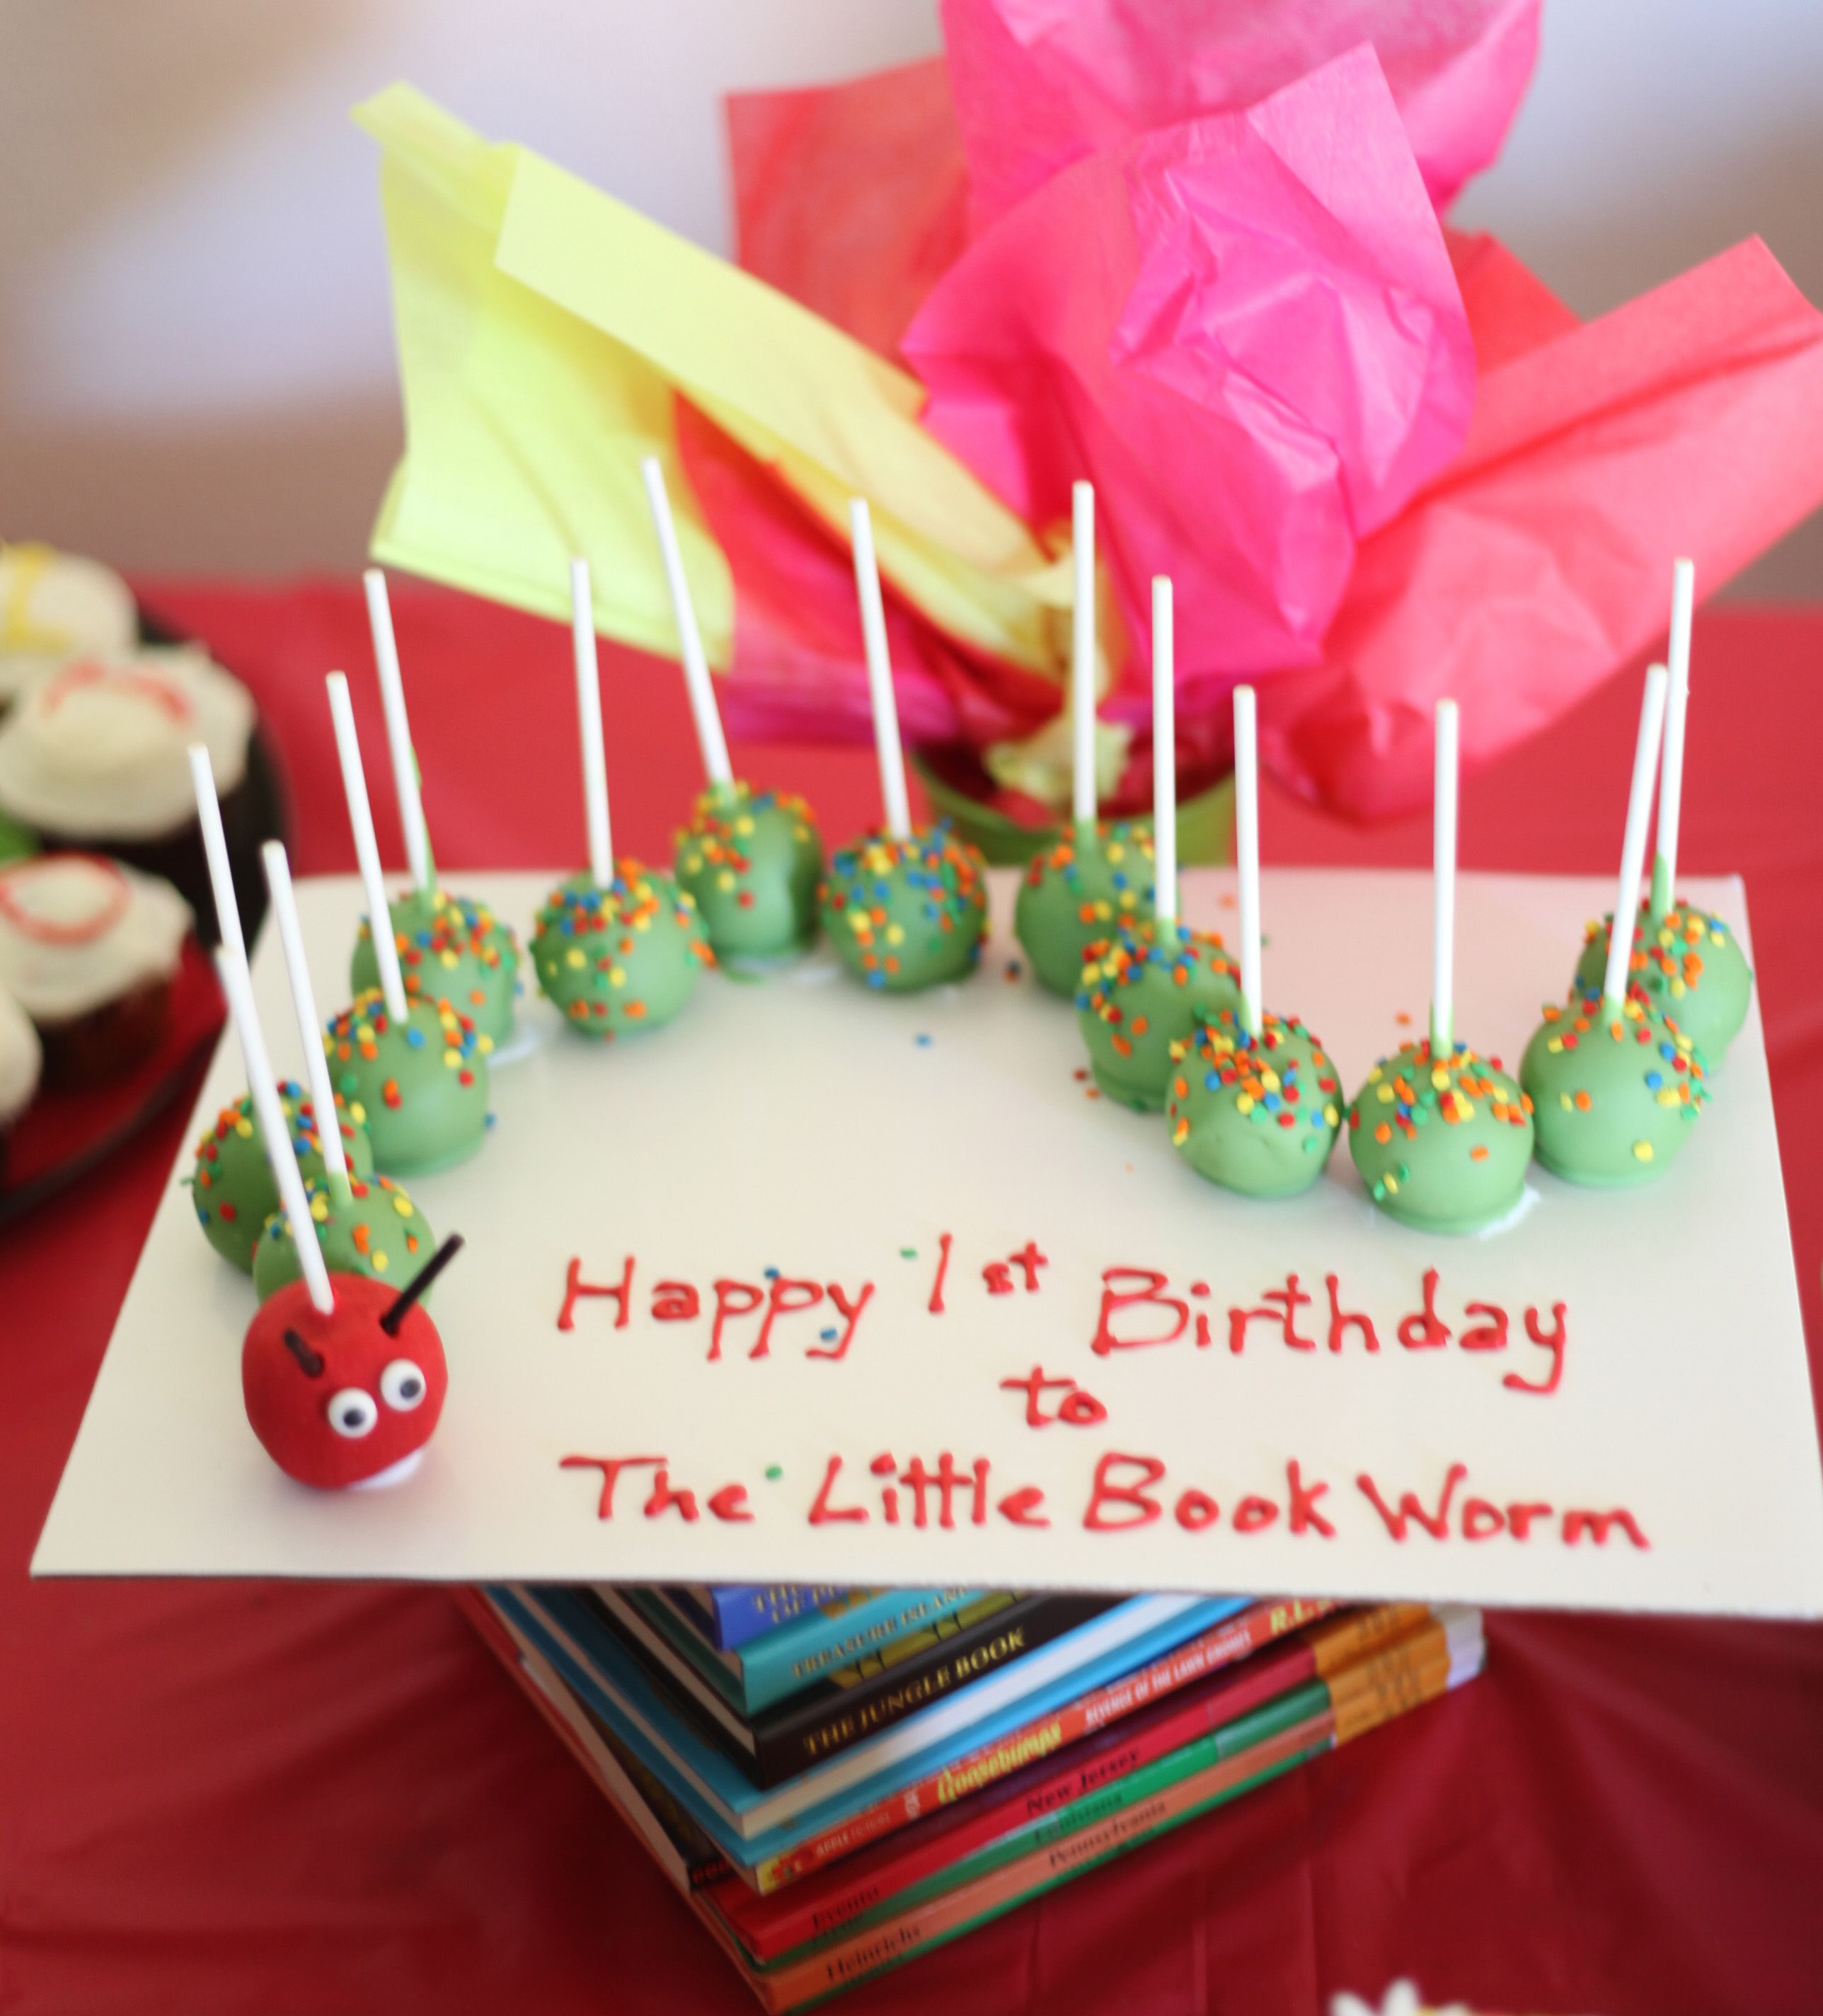 A 1st Birthday Party For The Little Bookworm 1st Birthday Parties Bookworm Party Birthday Party Planning